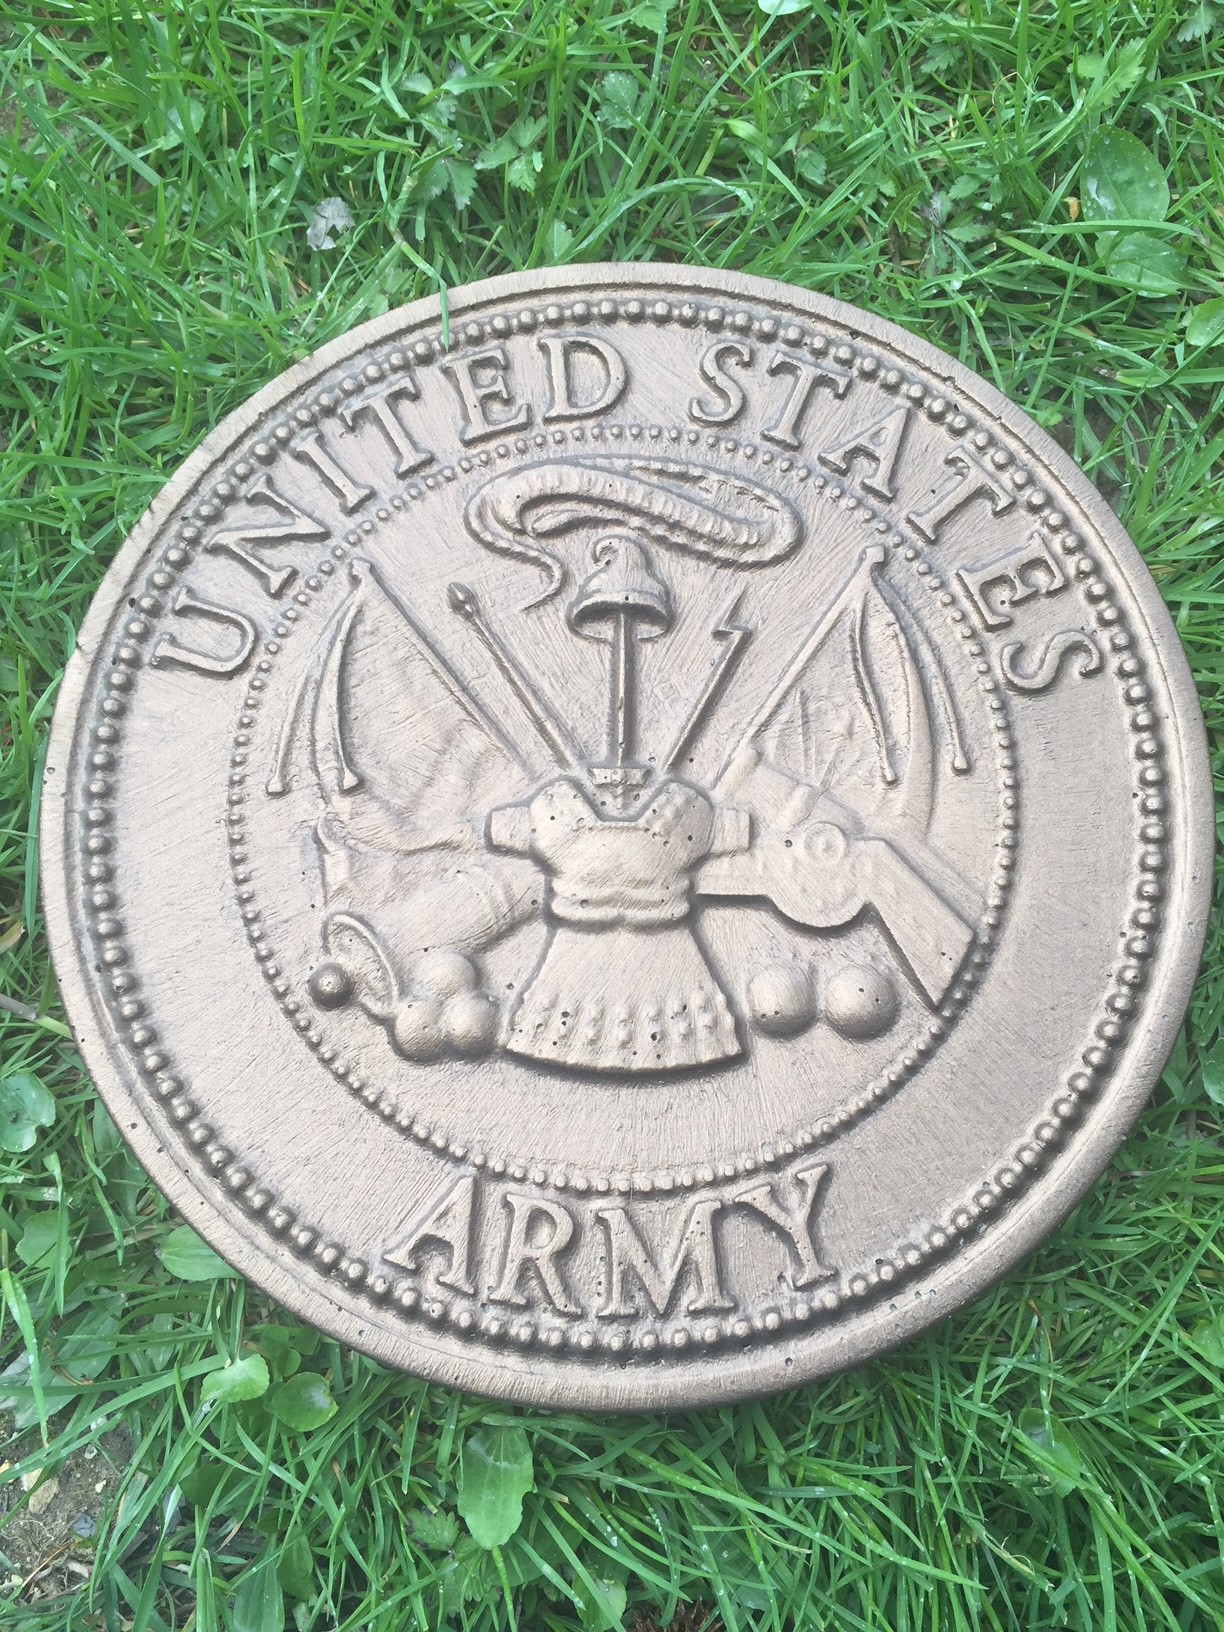 Army Military Concrete Mold